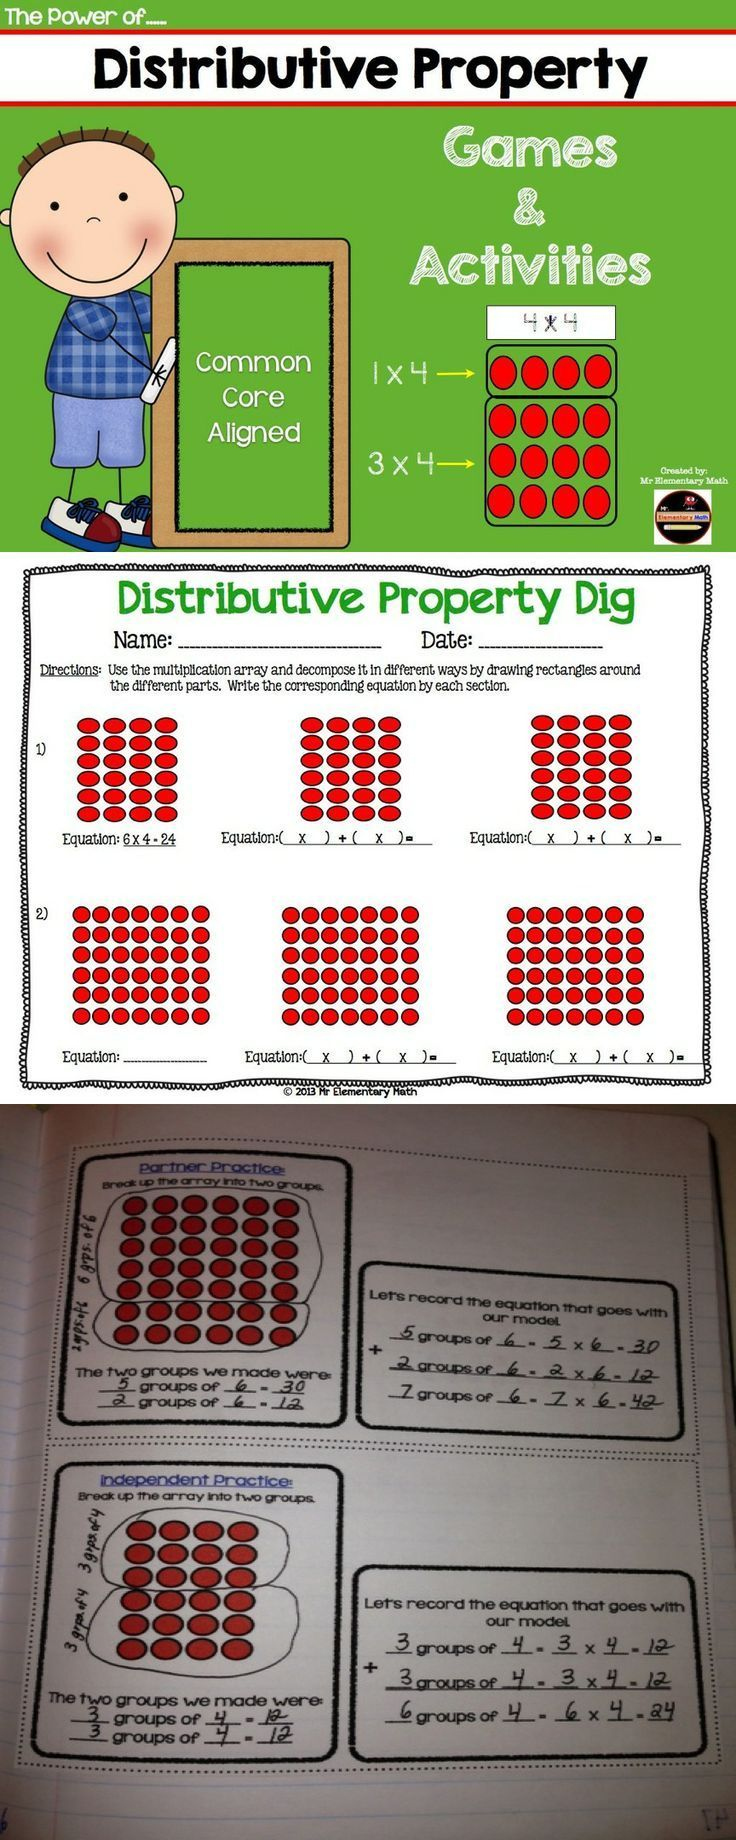 Distributive property is an essential concept in 3rd and 4th grade. Try using these activities and games that include lots of clear visuals to help develop conceptual understanding.